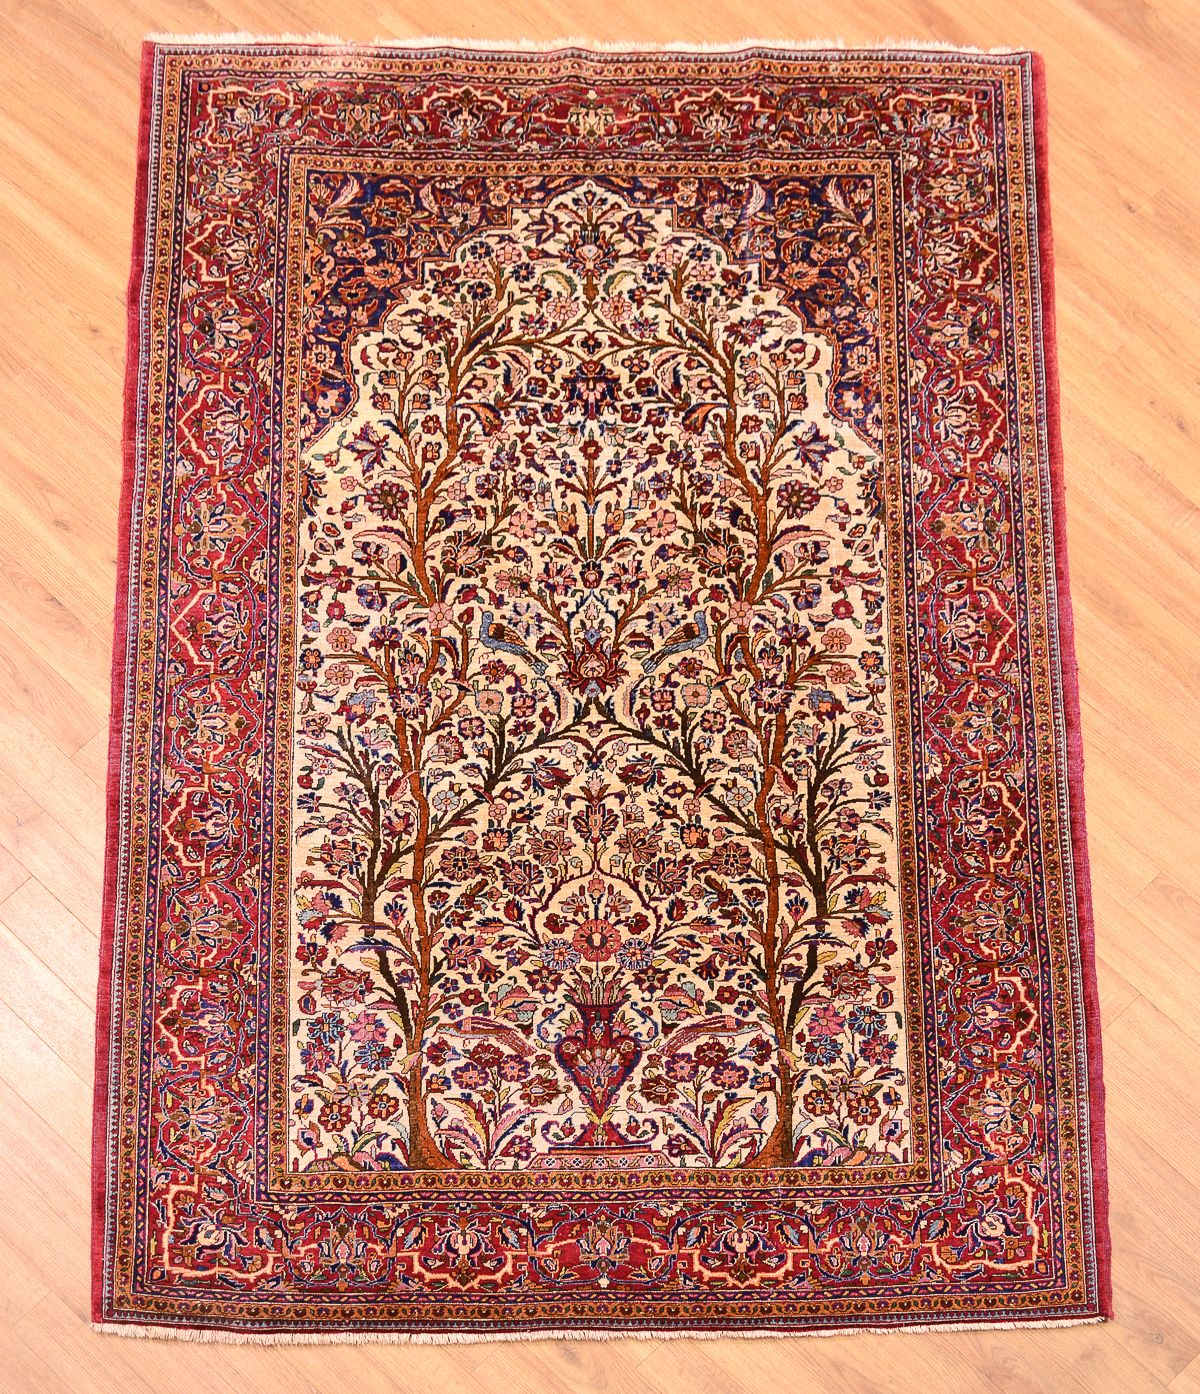 If you are looking to buy Kashan_rugs in Dubai, then